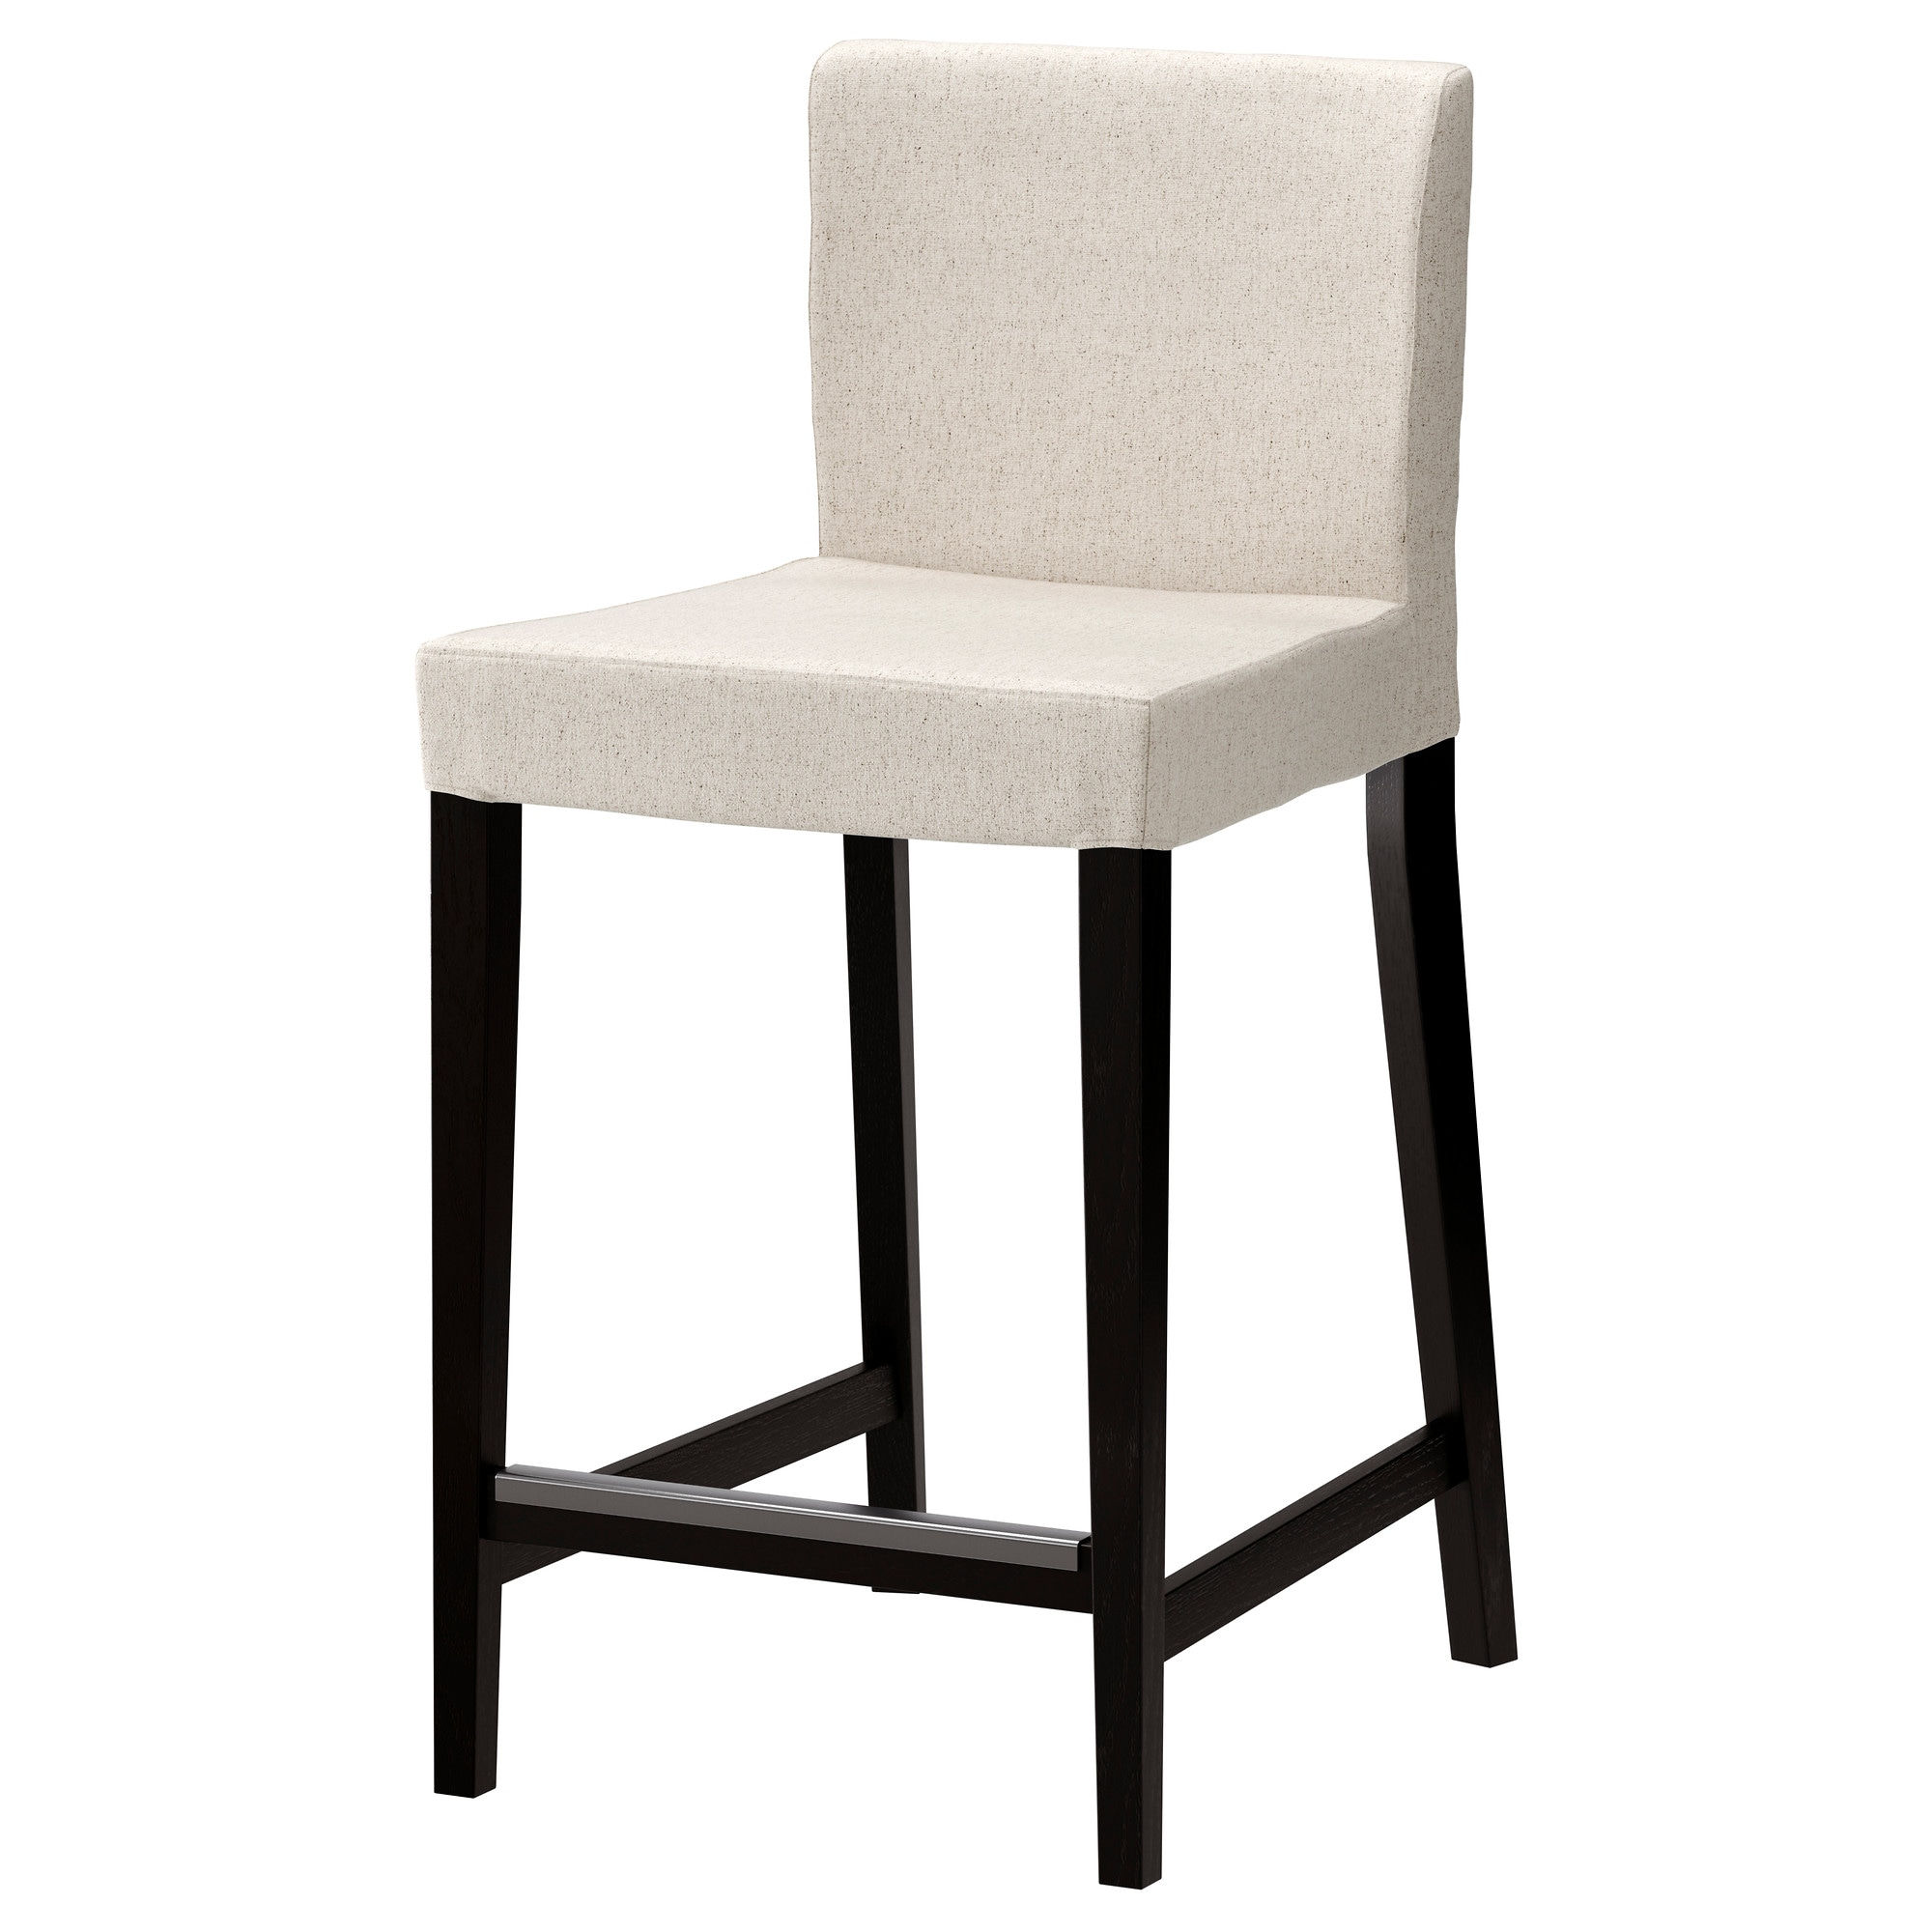 "HENRIKSDAL Bar stool with backrest 30x19 "" IKEA"